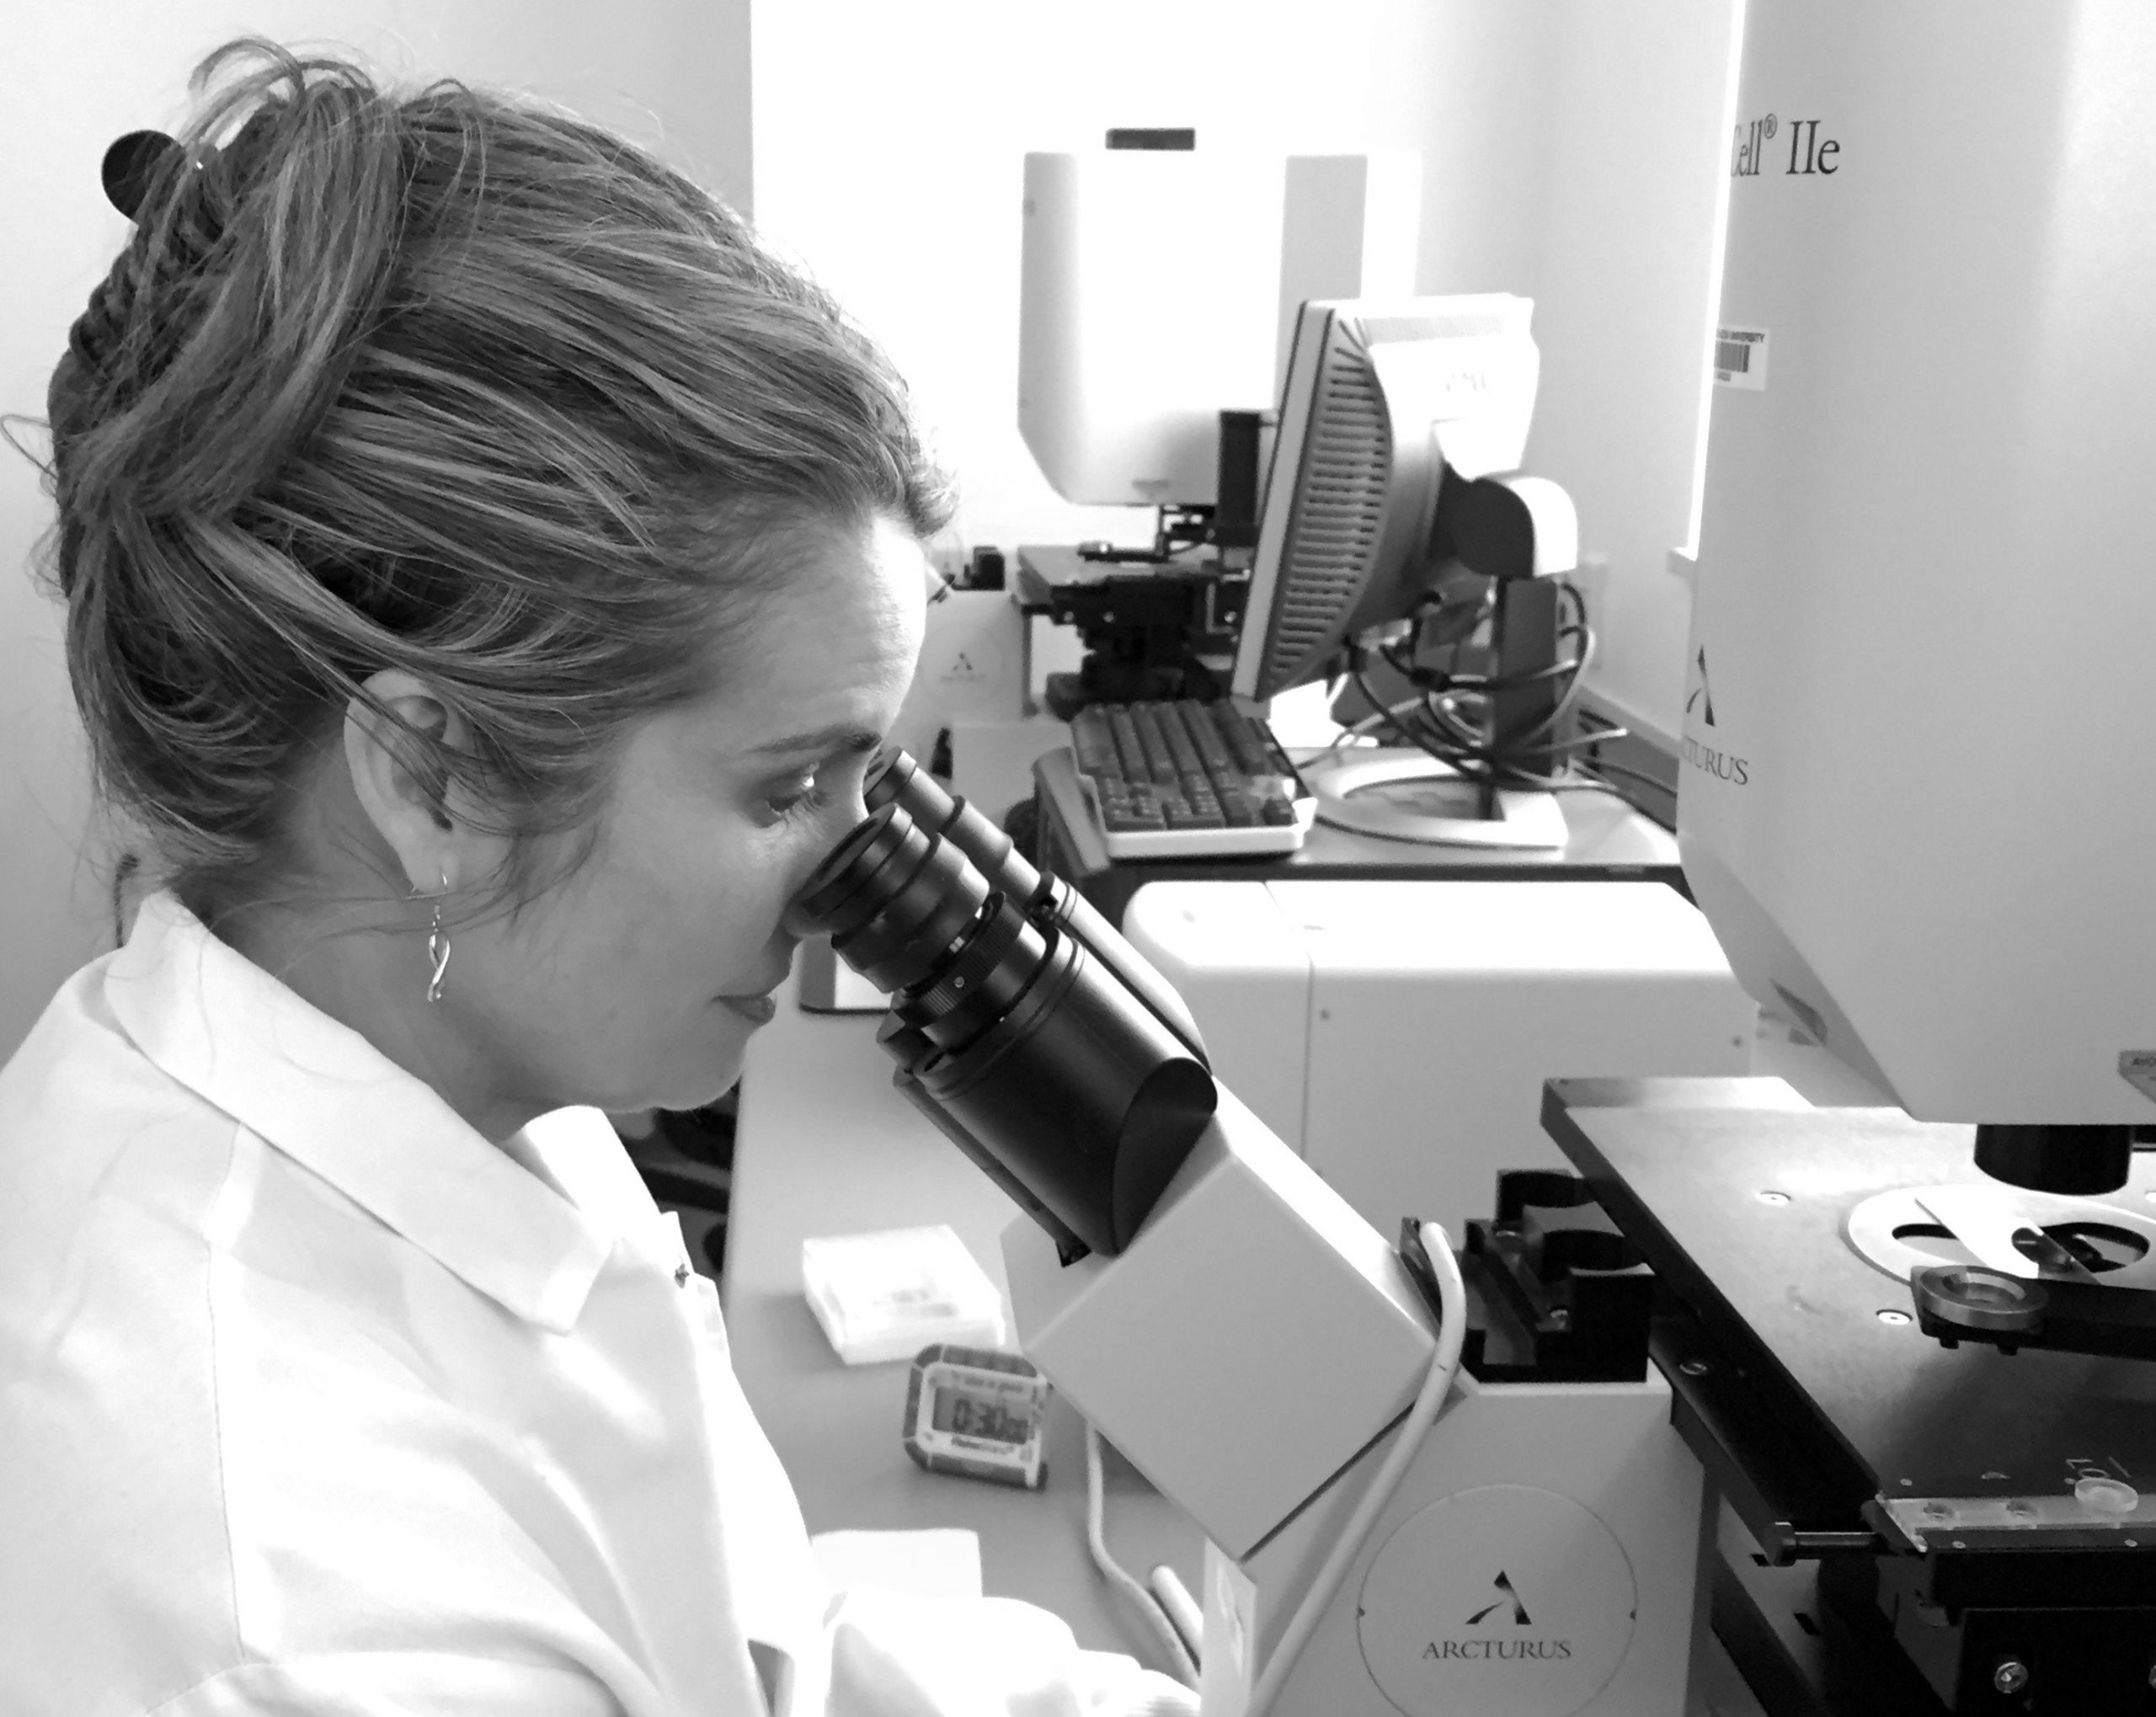 The Side-Out Protocol: A Scientist's Perspective looking into a microscope